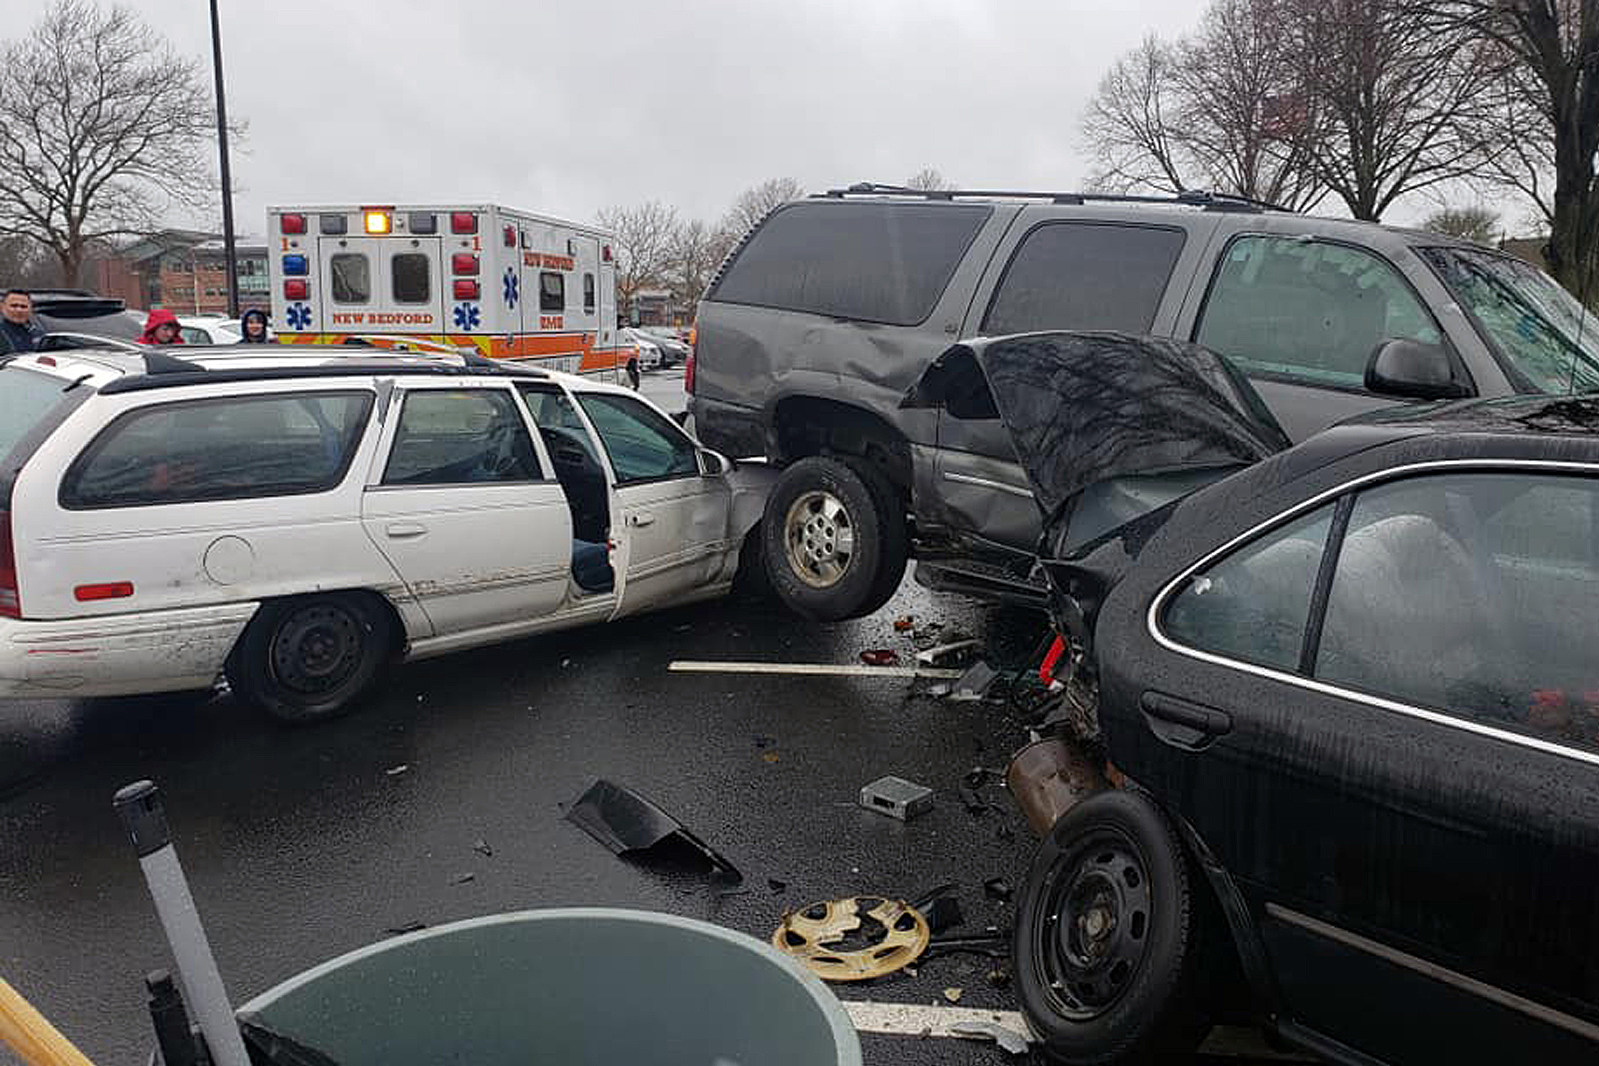 Multi-Car Crash at New Bedford High School Under Investigation